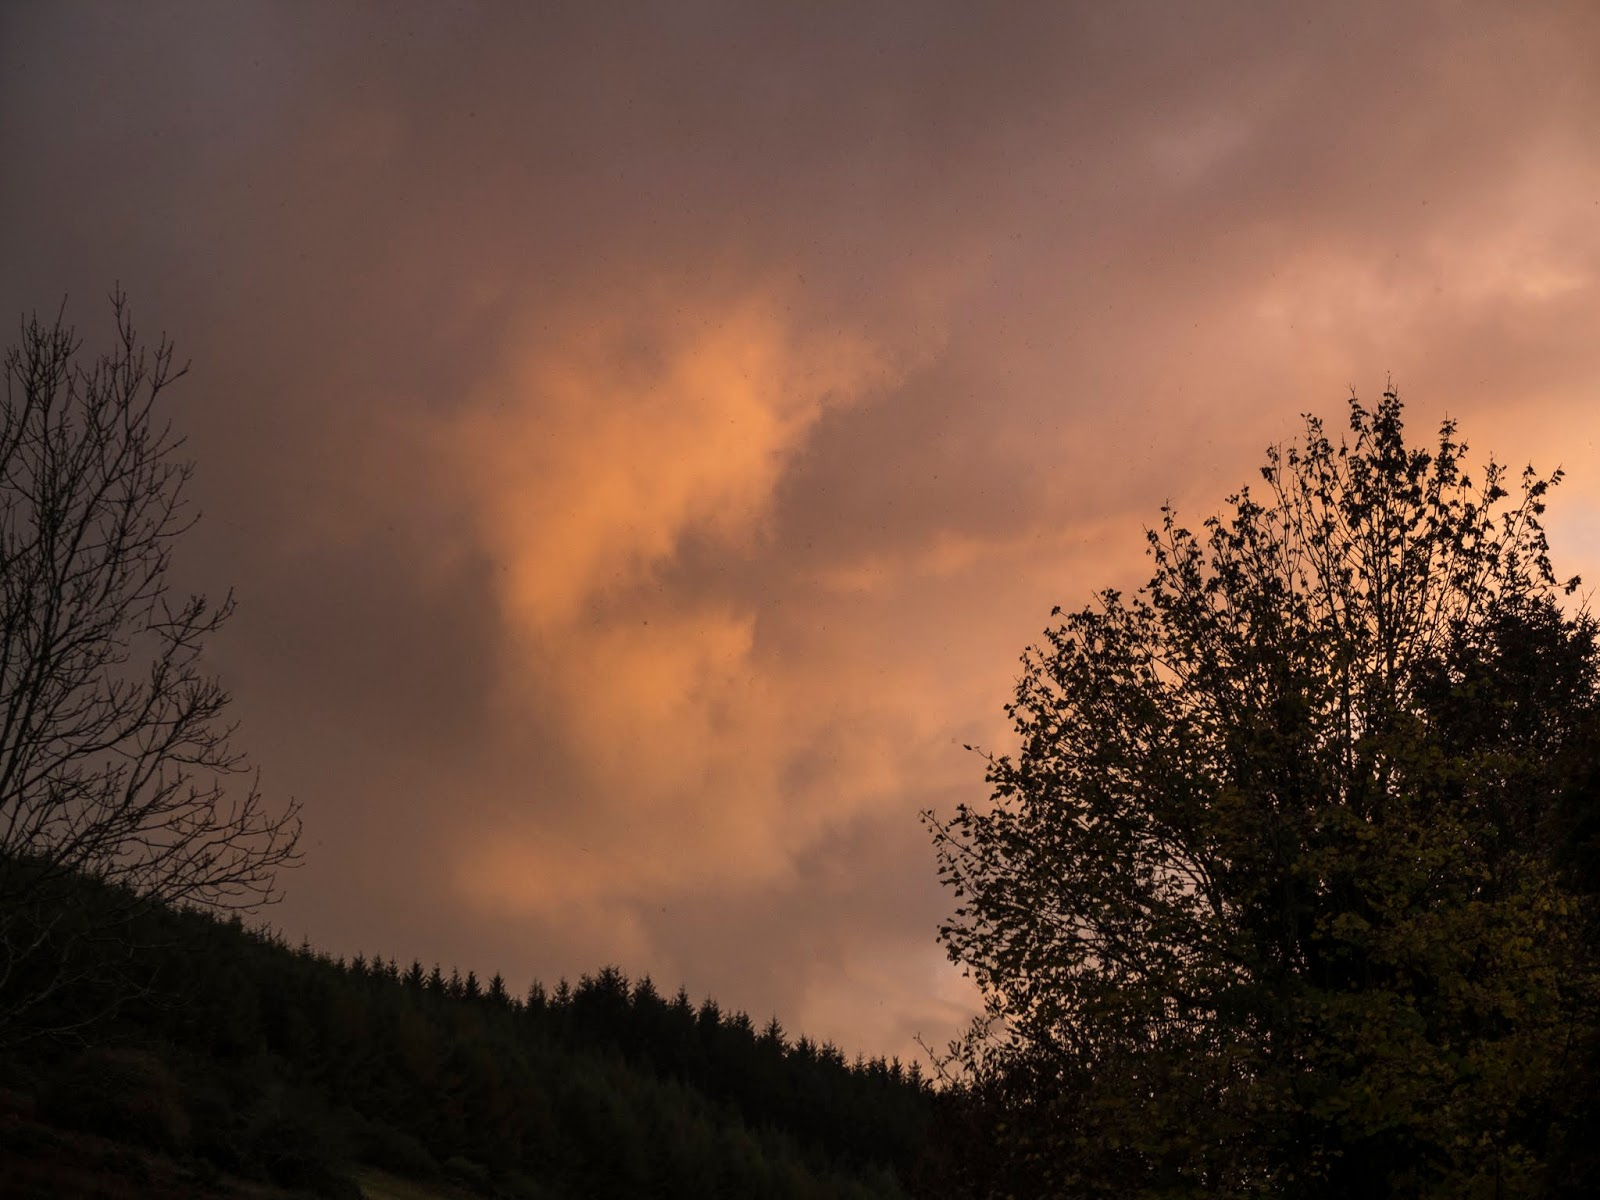 Autumn sunset clouds over a mountain side in North County Cork.